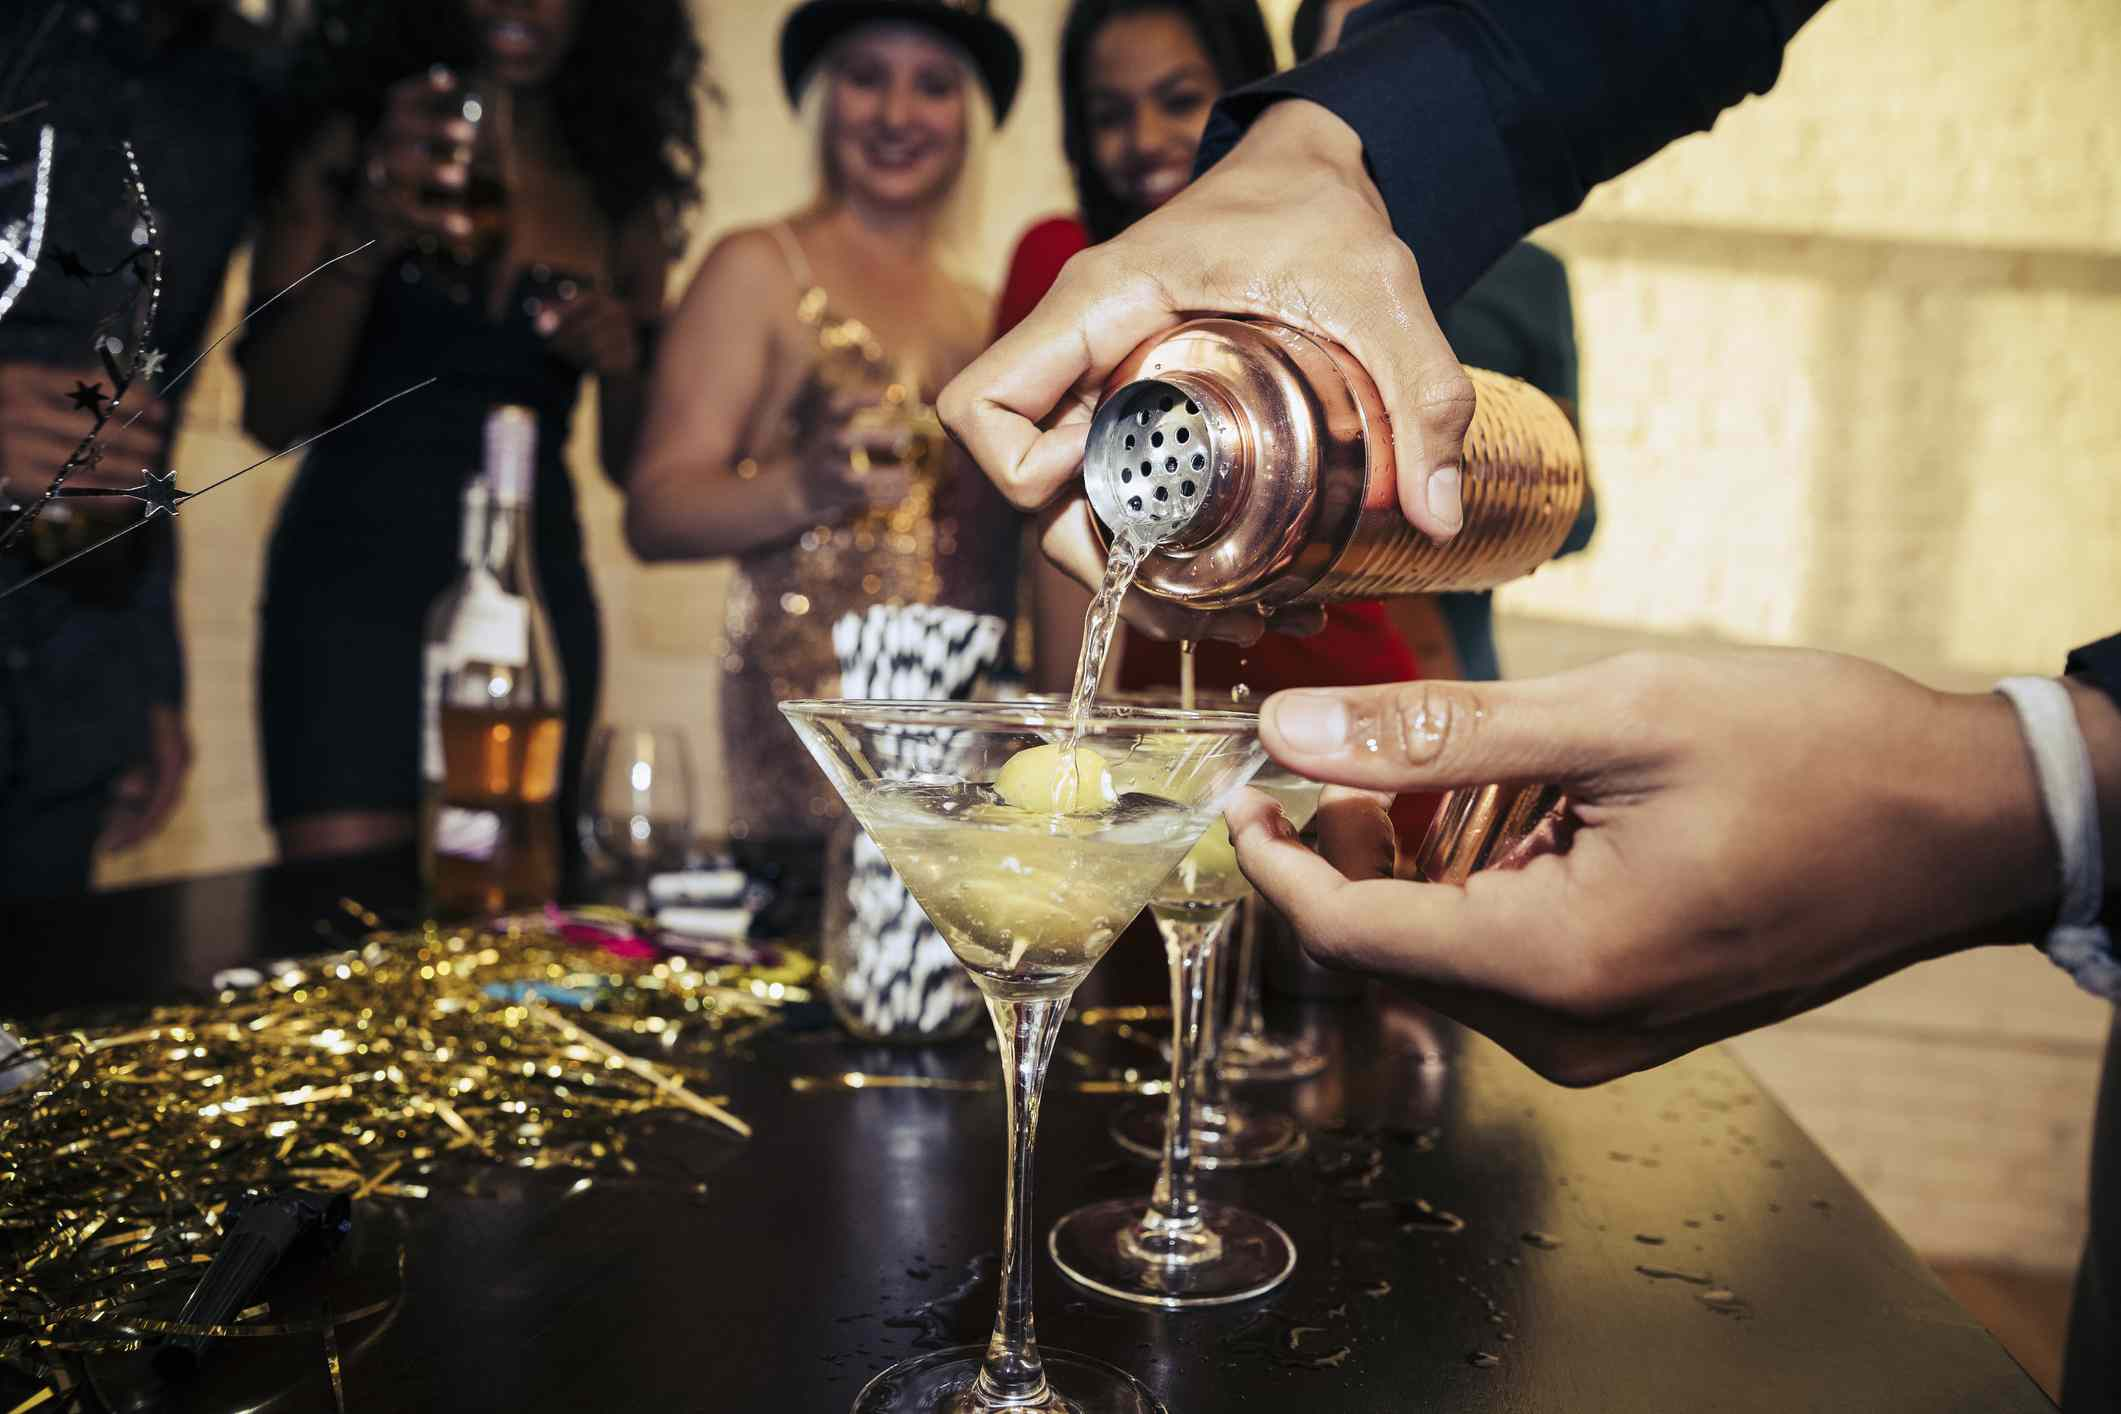 Person pouring cocktail while friends watch in the background at a party